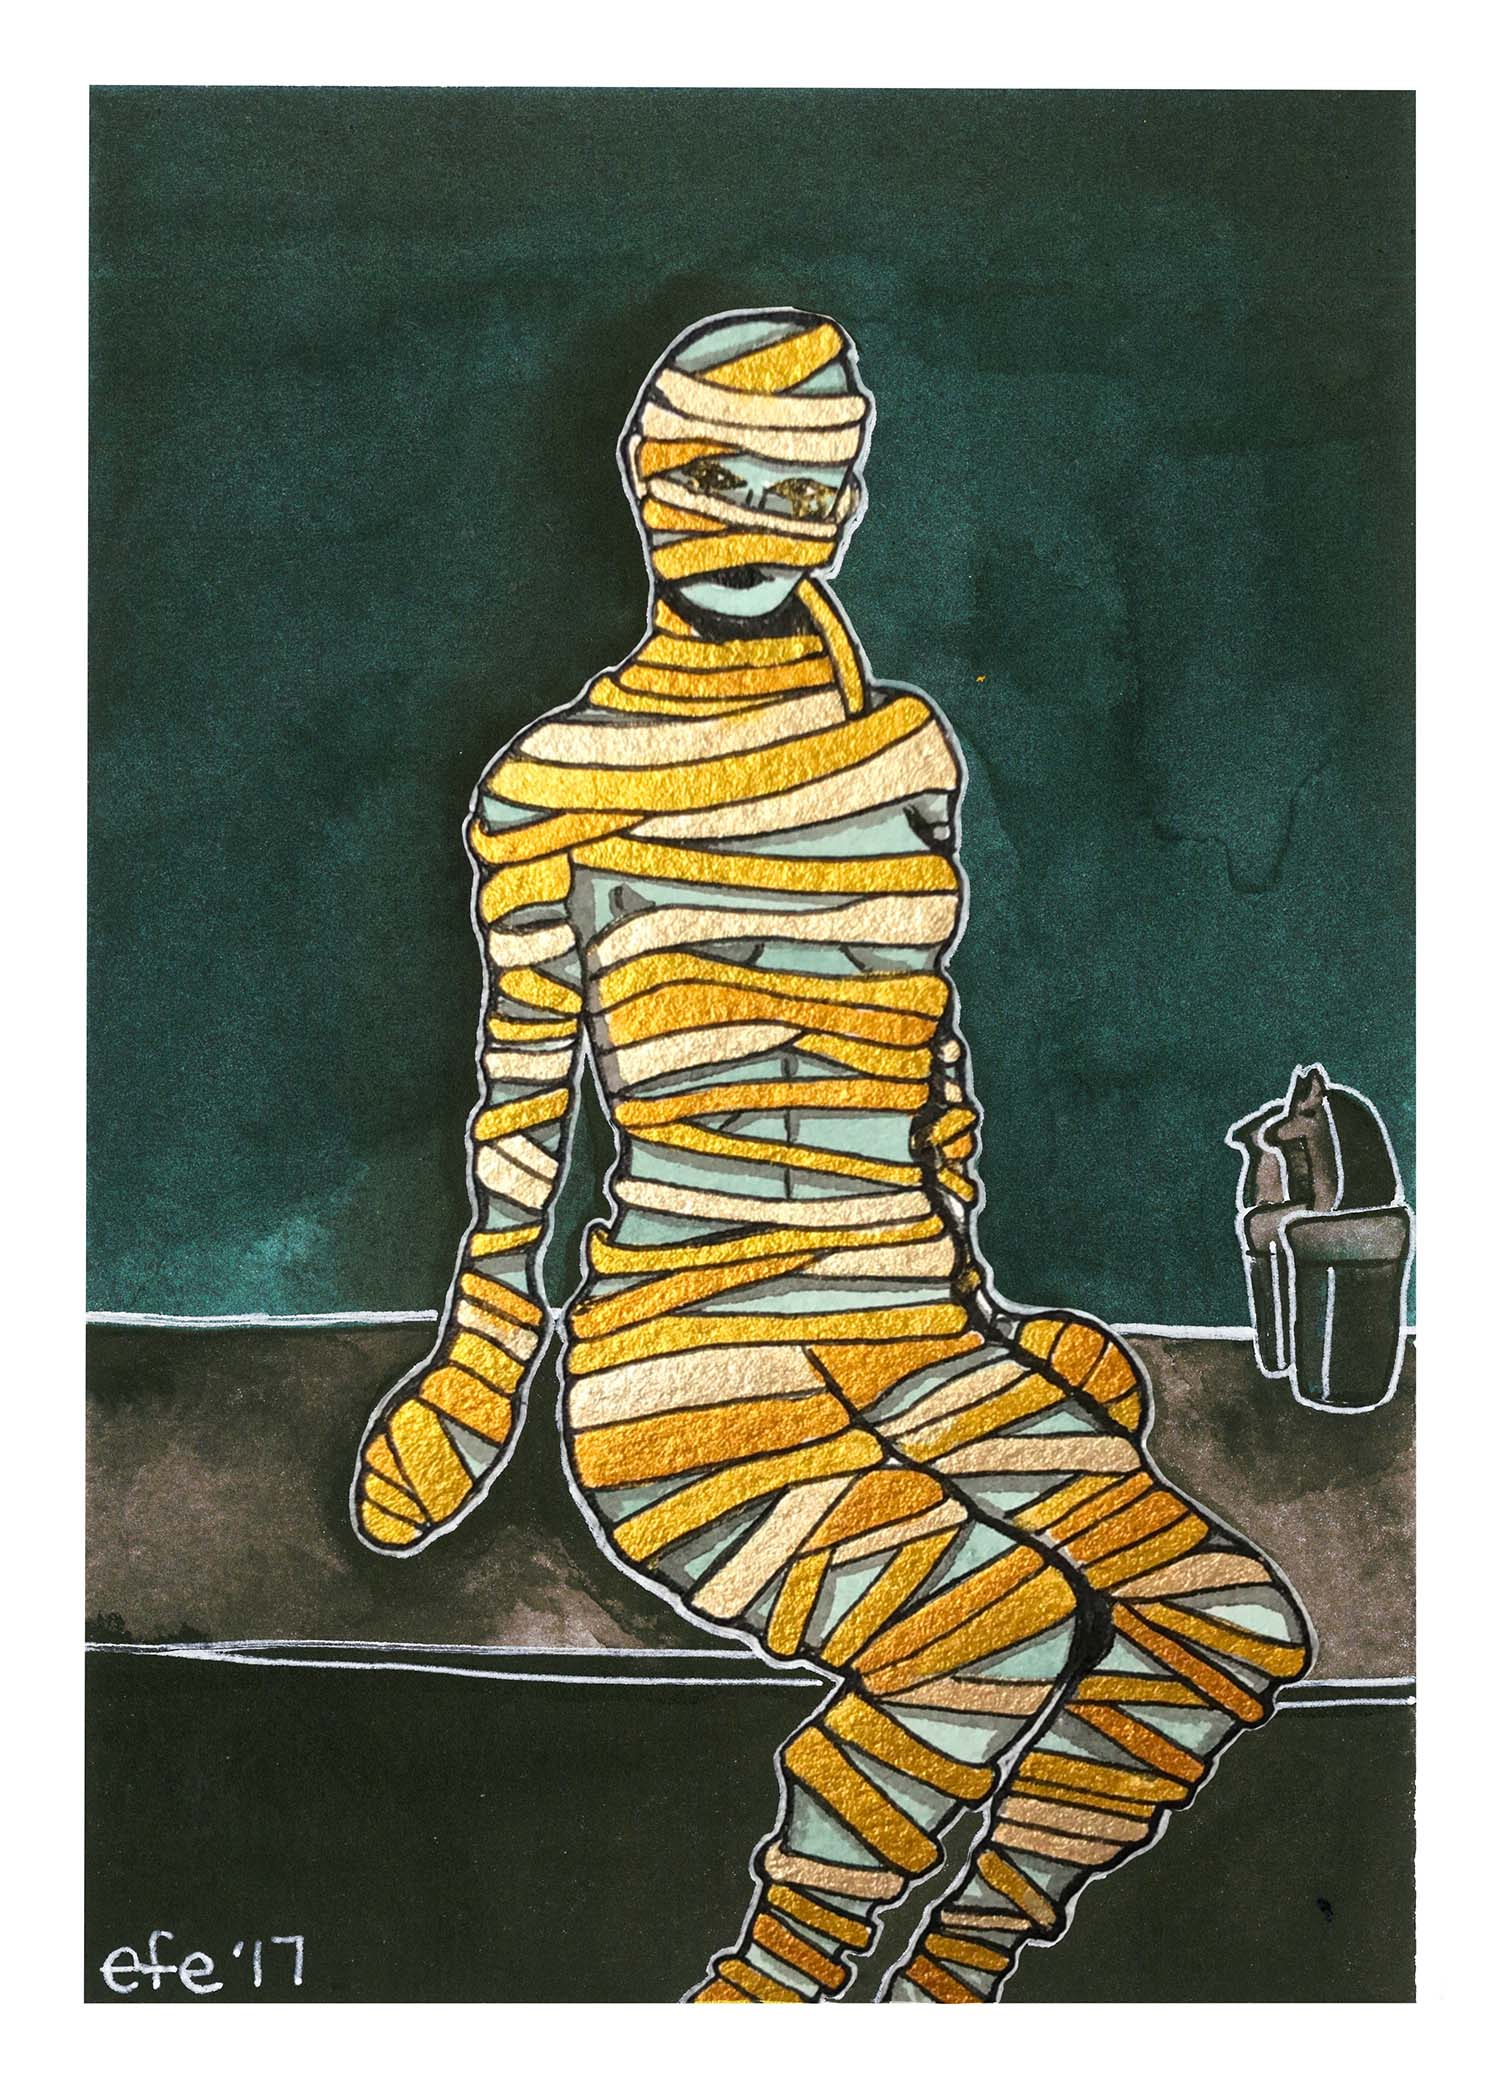 Day 23 - Some Words with a Mummy